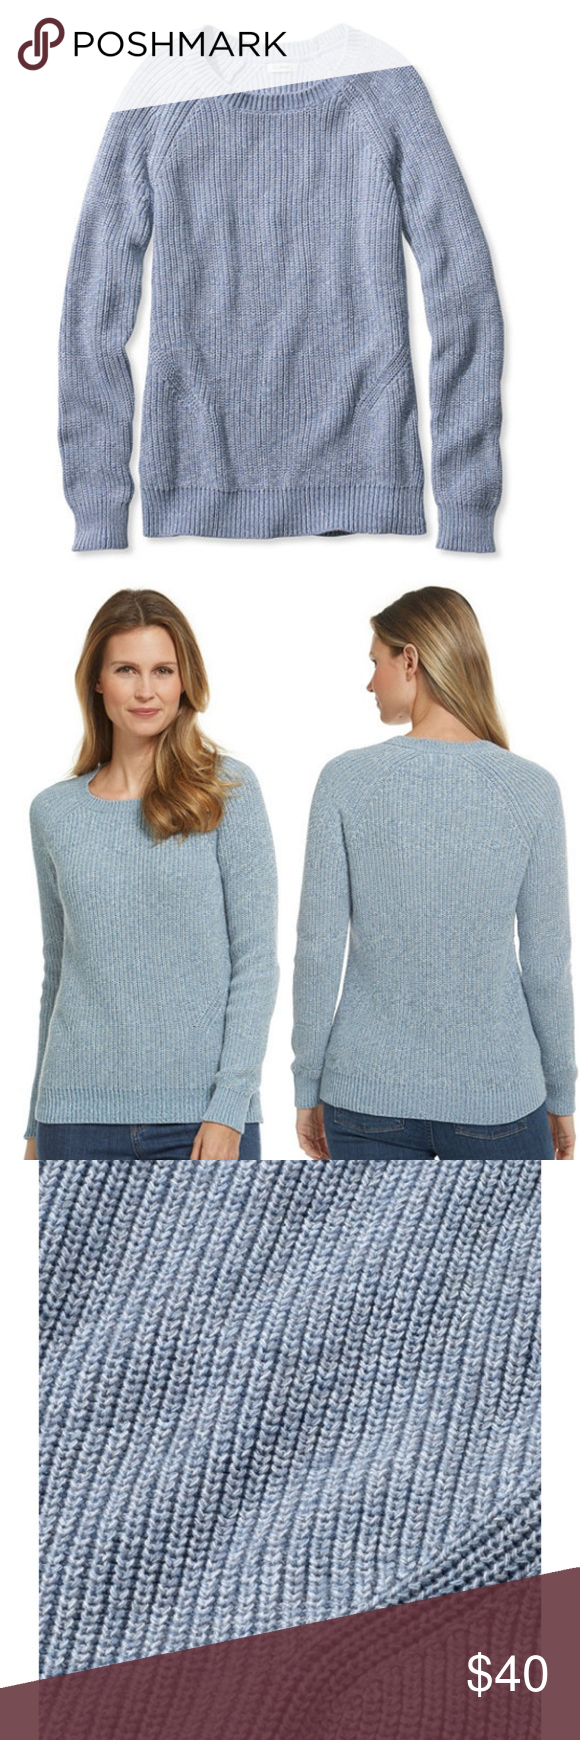 L.L Bean S ShakerStitch Crewneck Sweater (With images